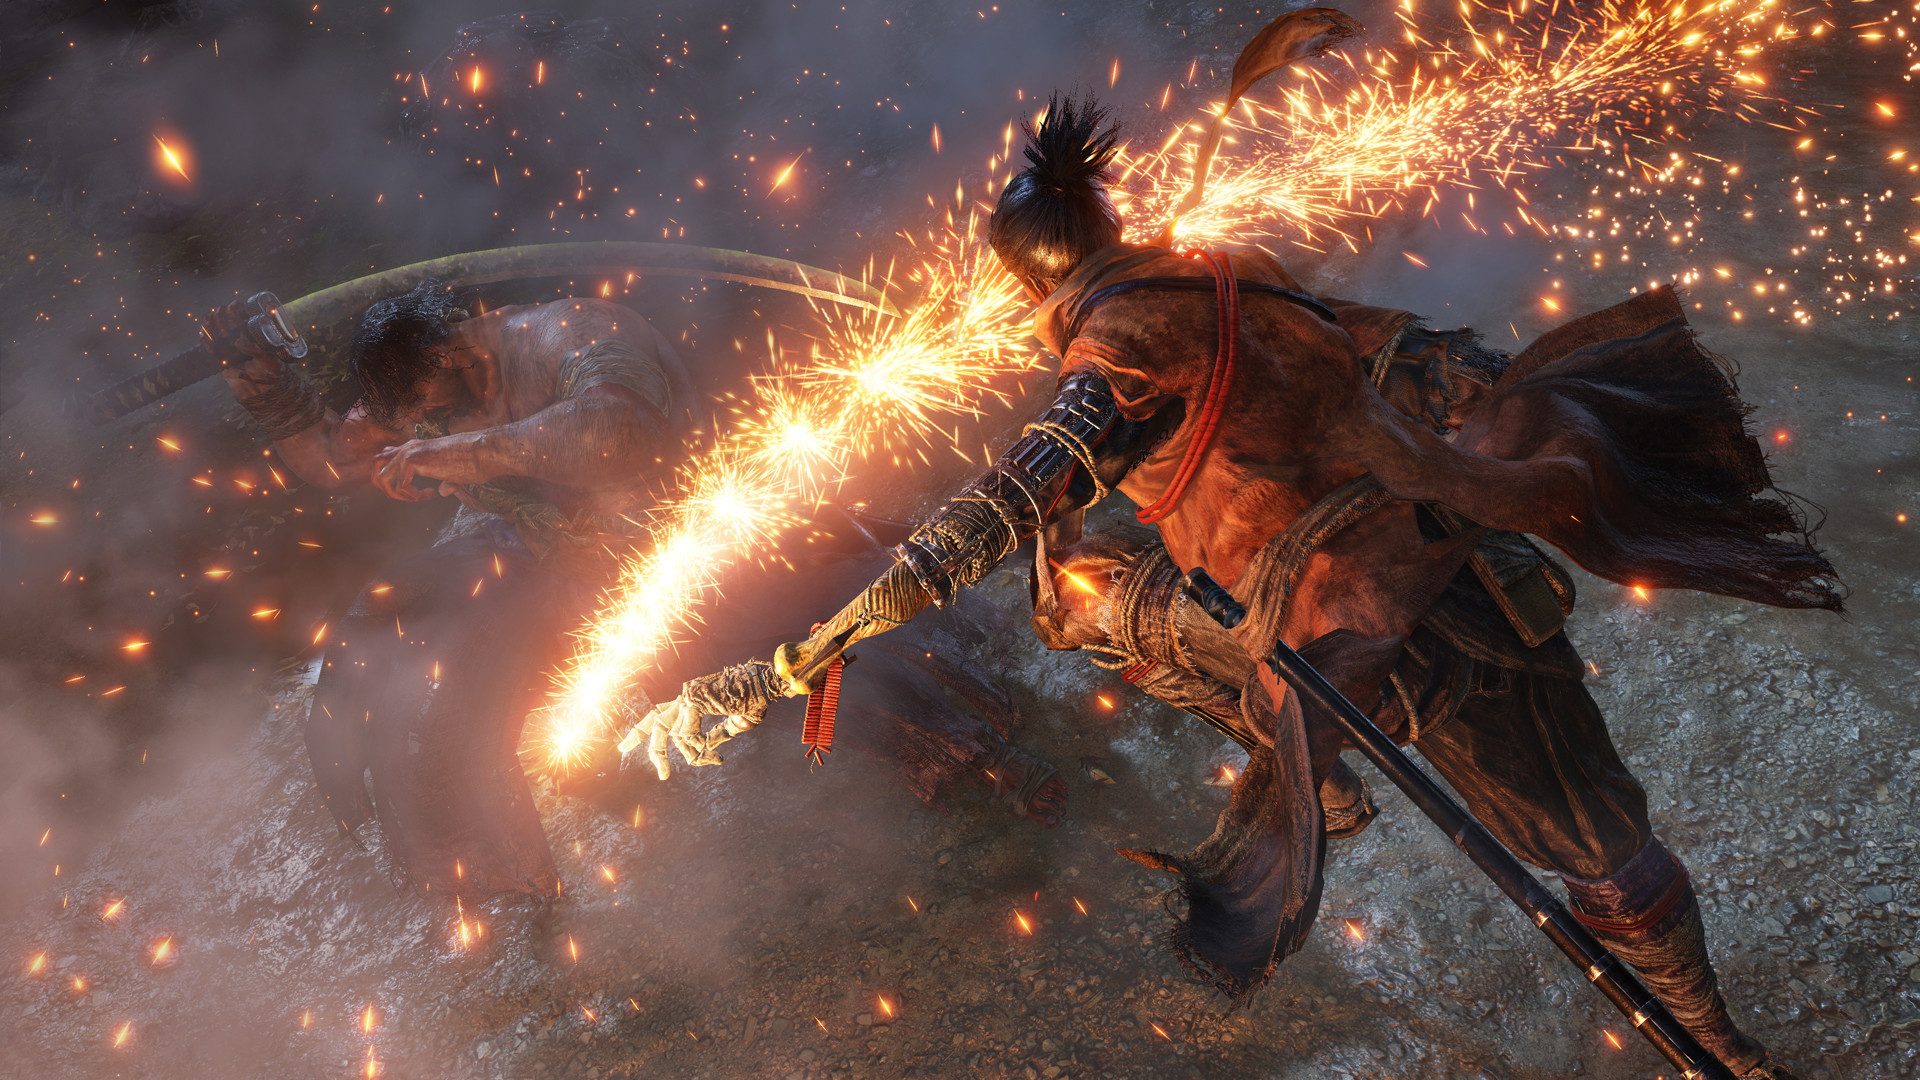 Sekiro: Shadows Die Twice [PC PS4 XONE] Ss_285c1a69bda8182e5c52598d59259f1681b42e5c.1920x1080